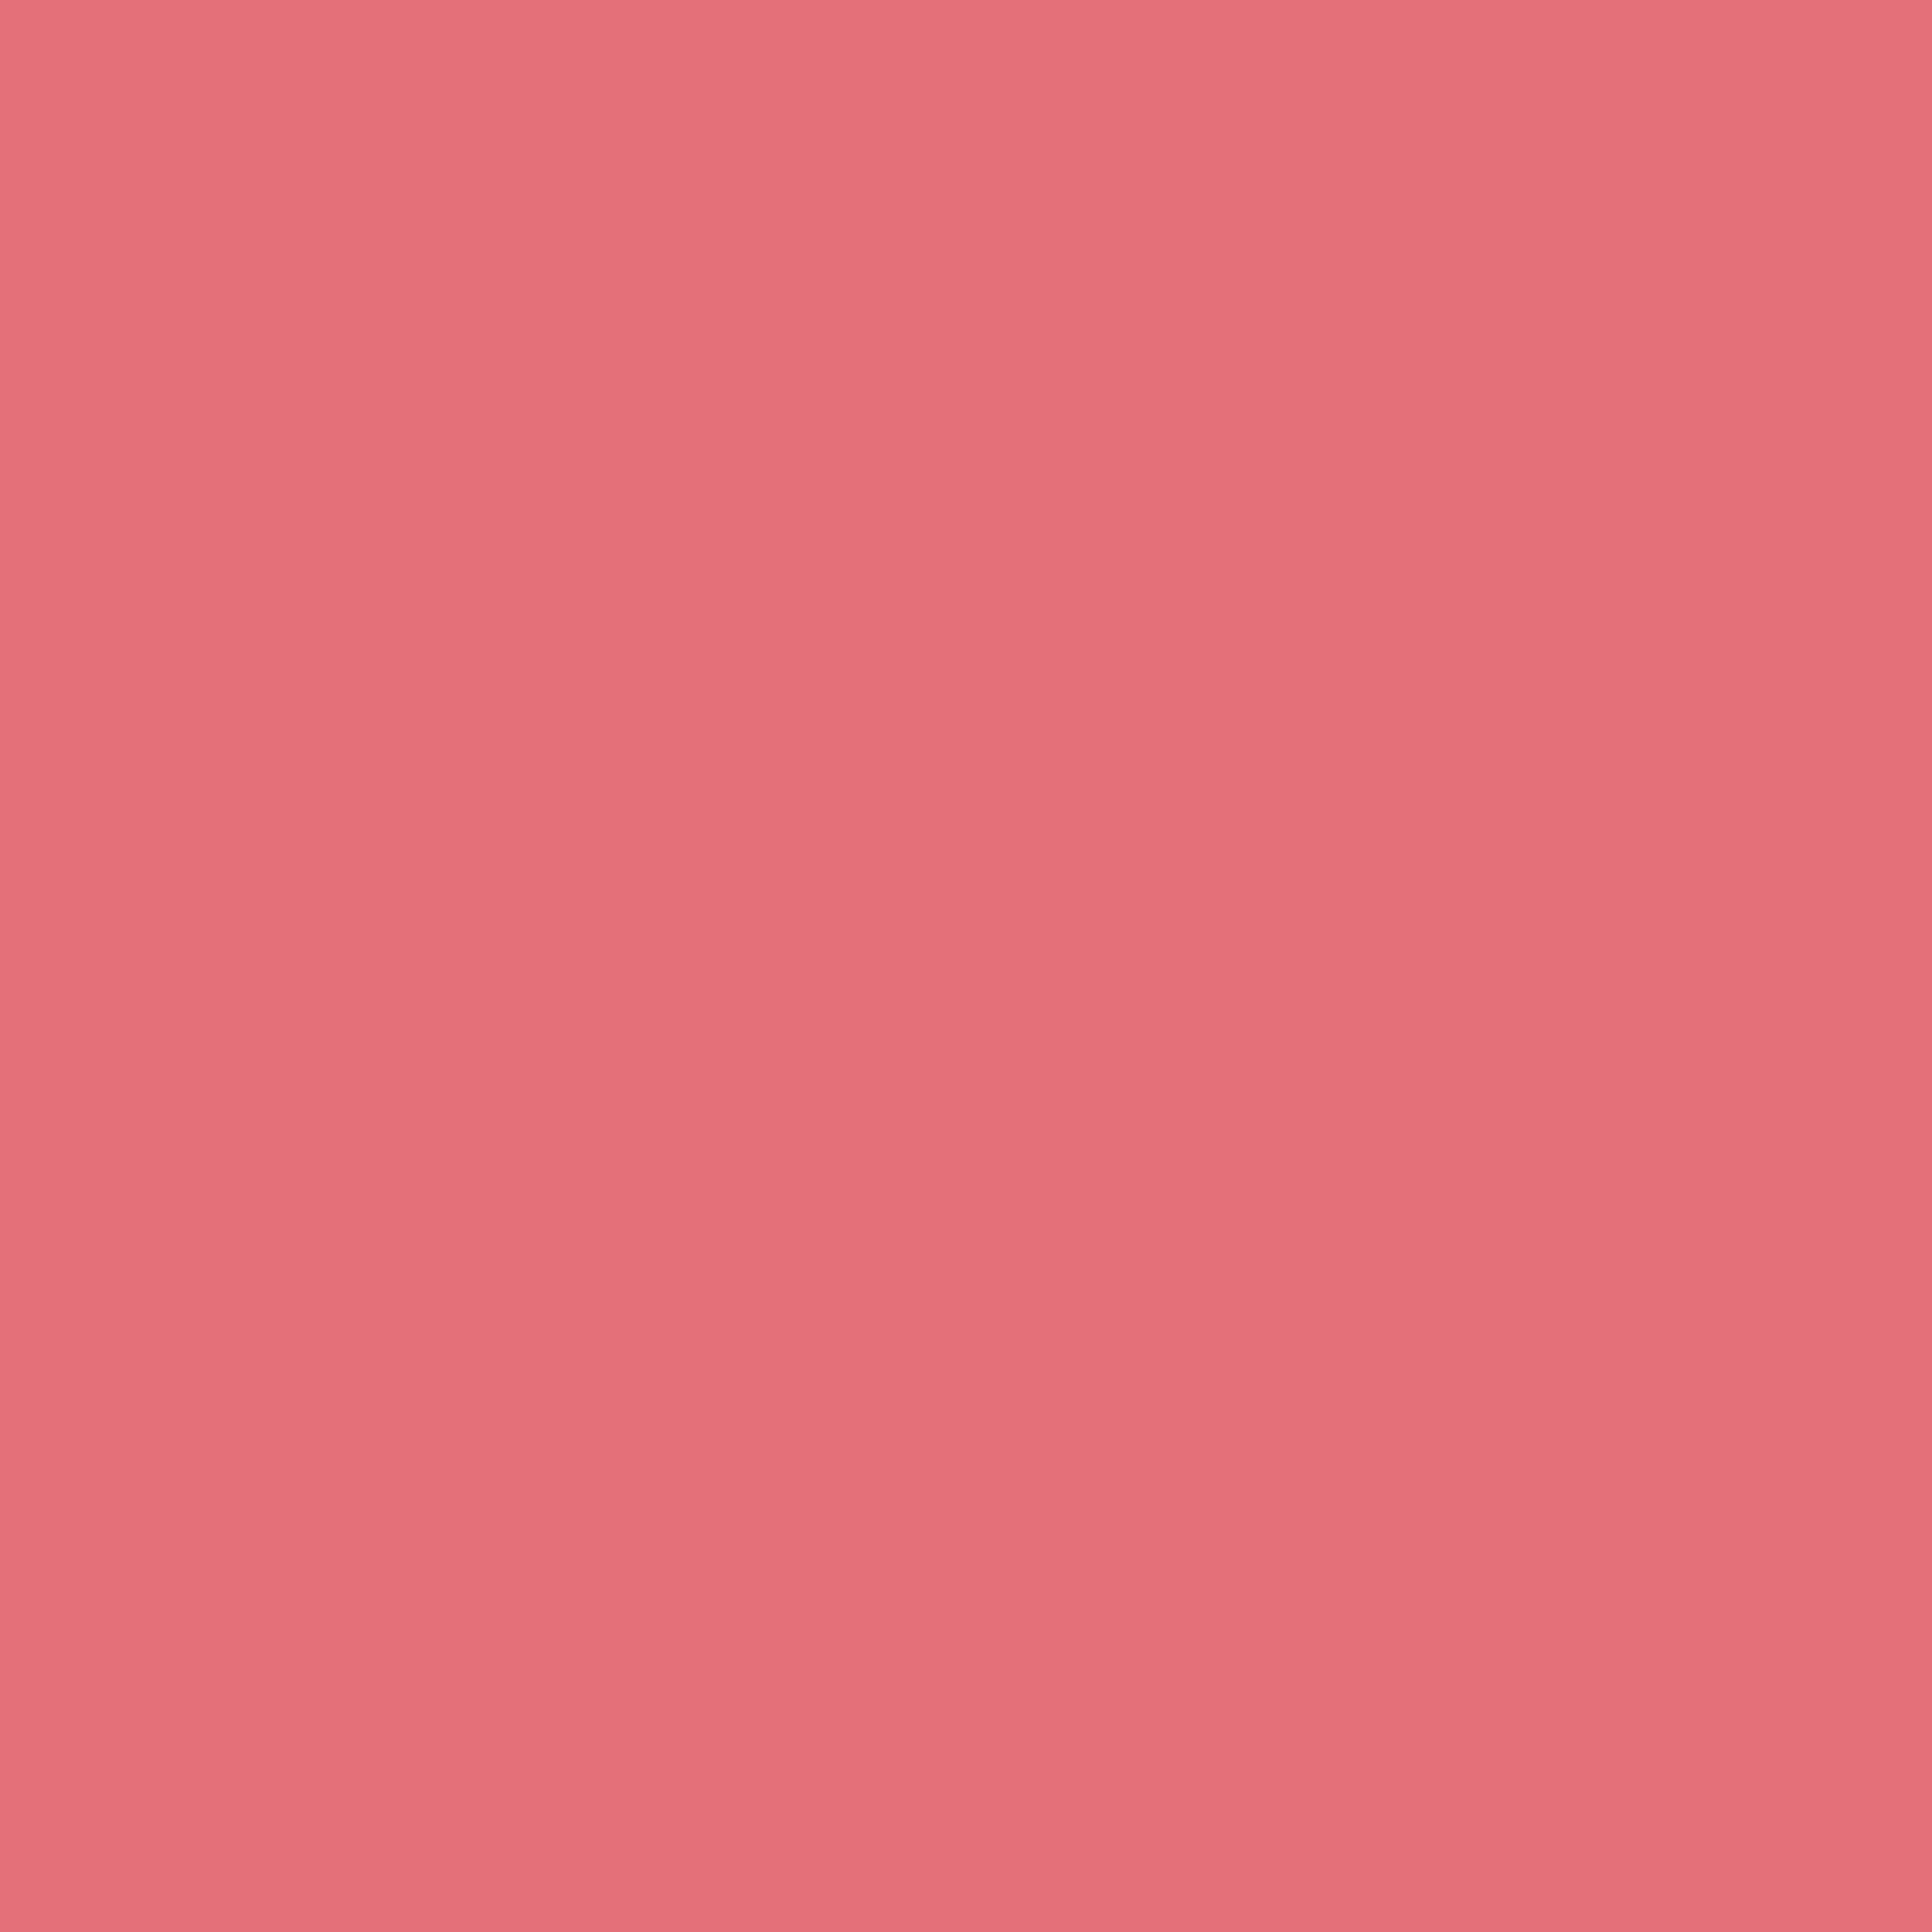 2732x2732 Candy Pink Solid Color Background